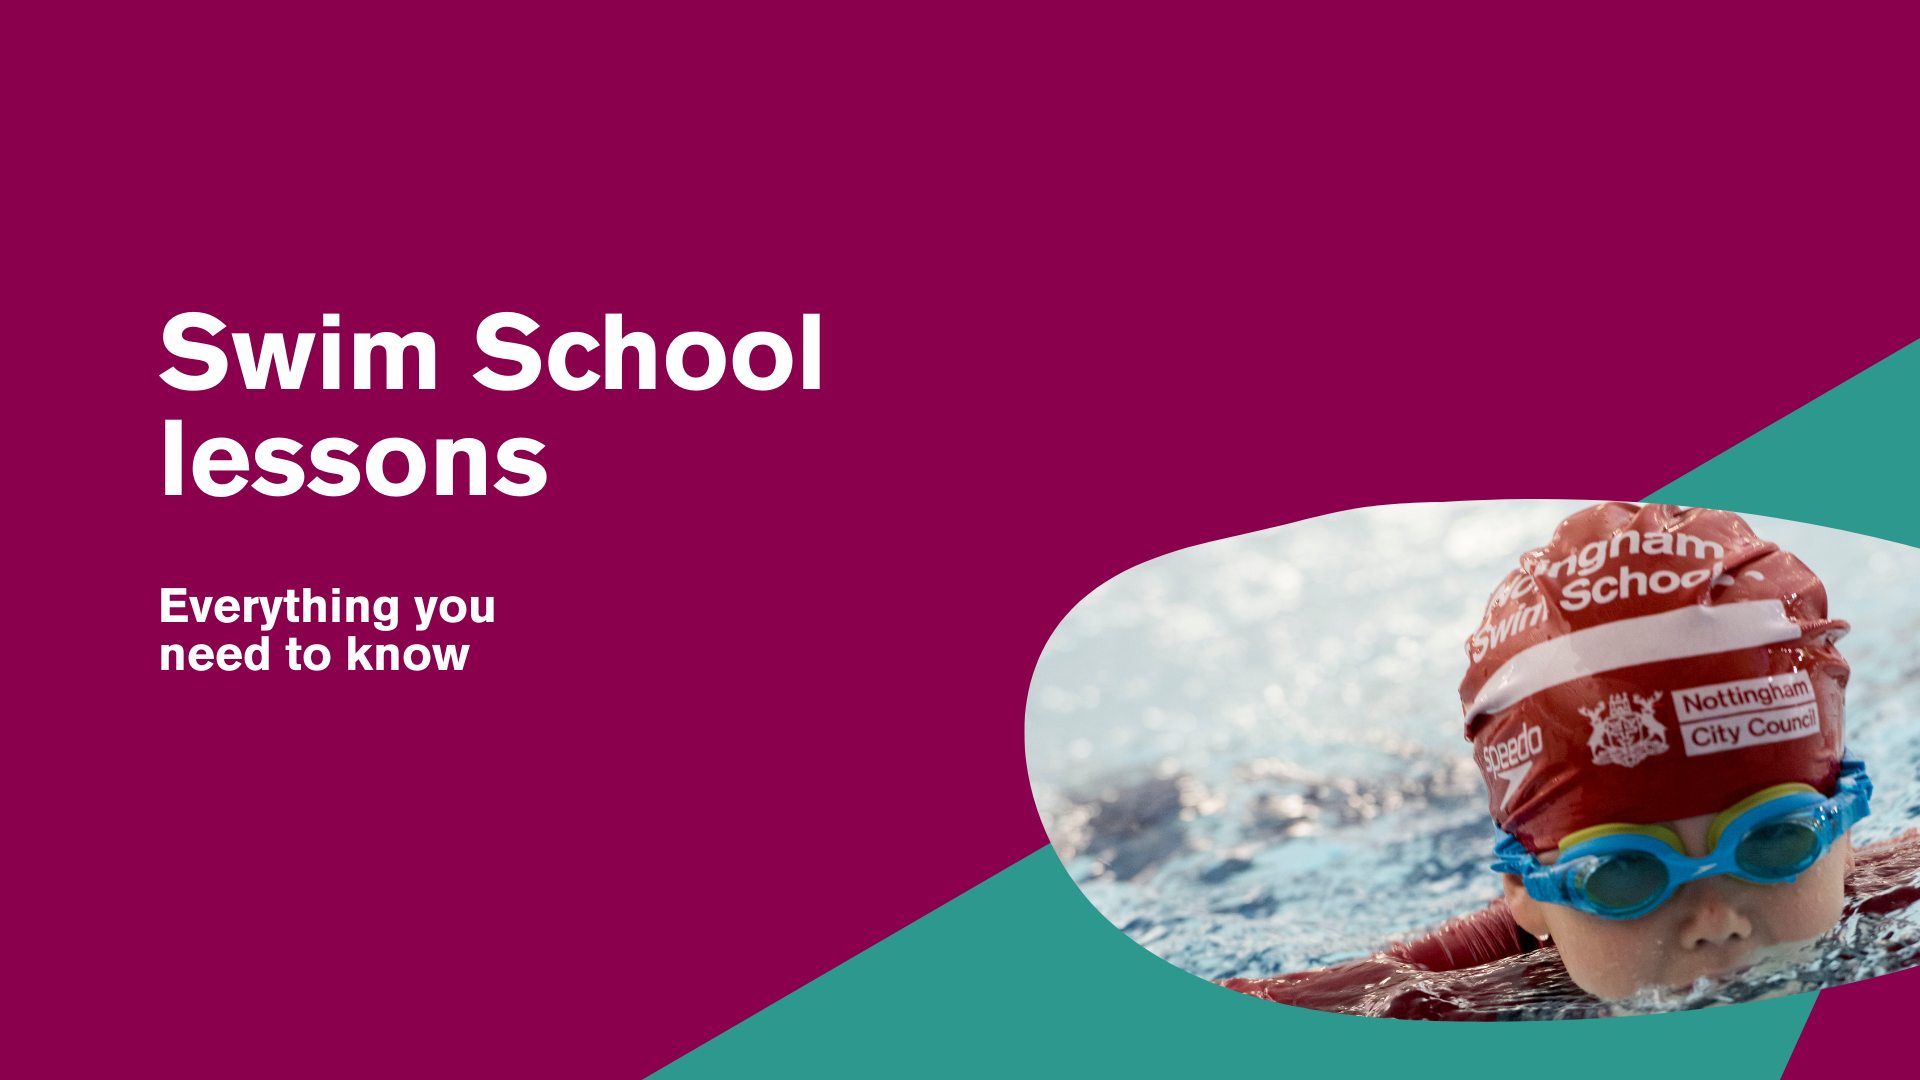 Everything you need to know about Swim School lessons